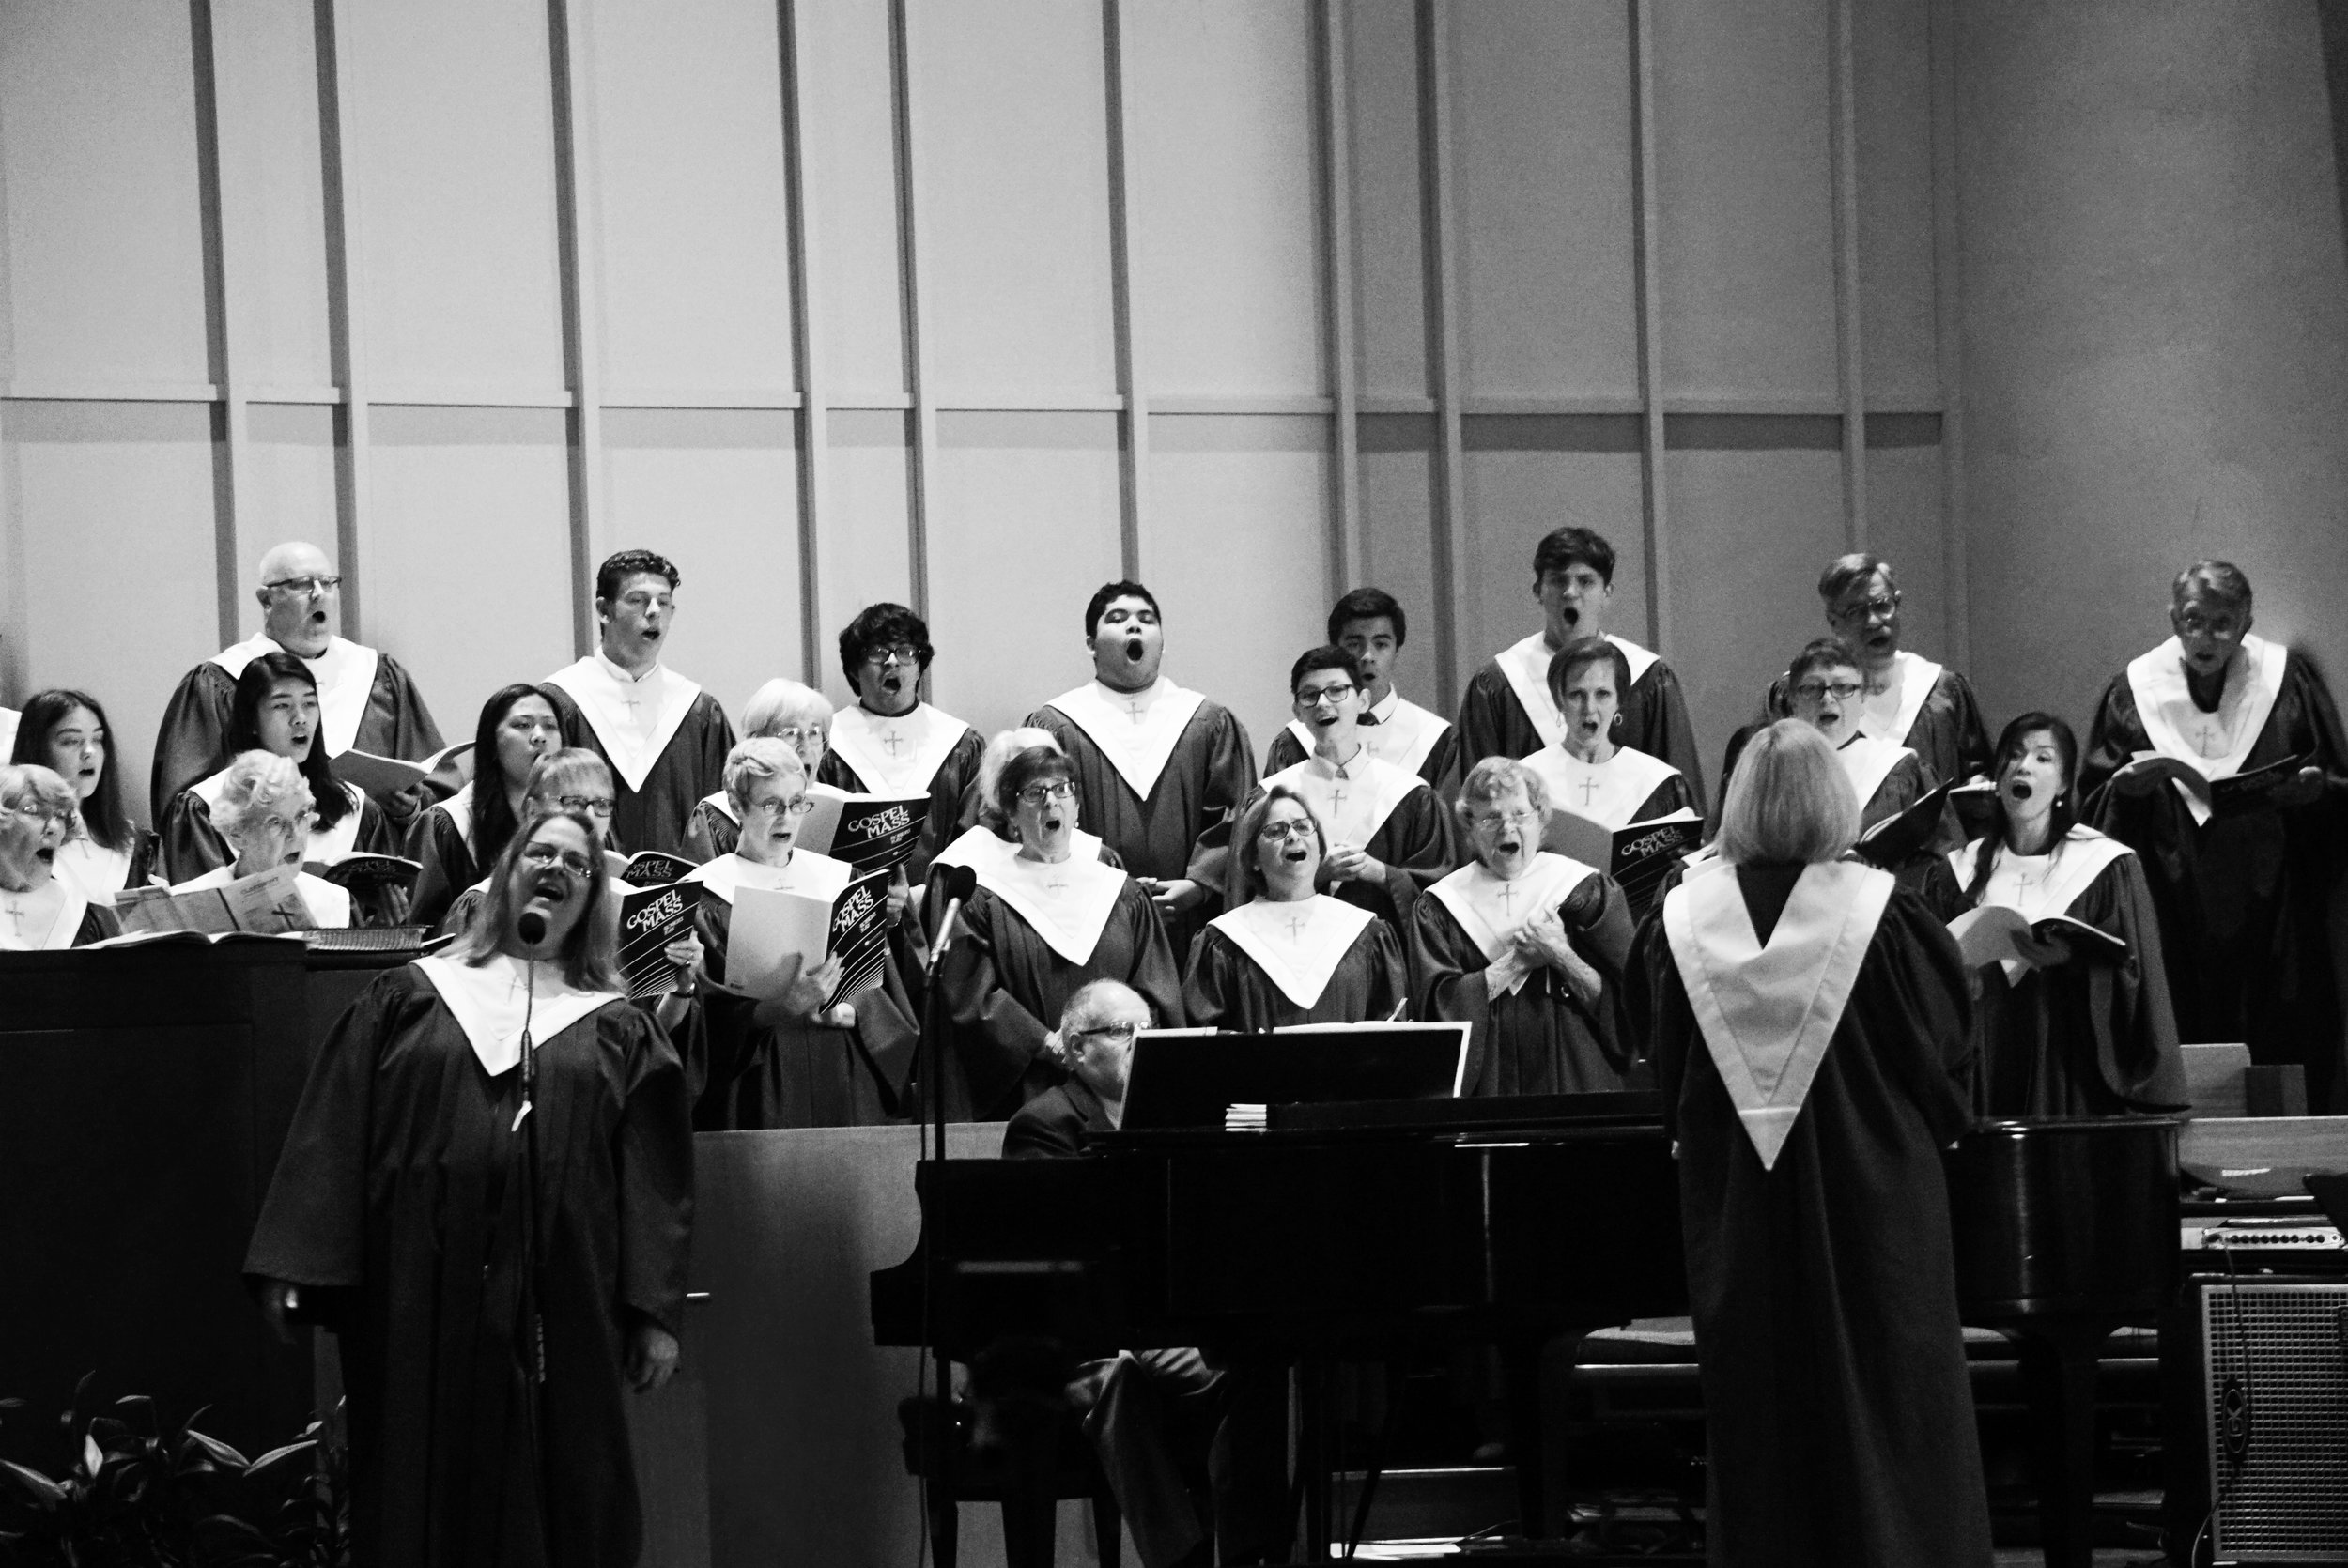 claremont-presbyterian-church-easter-choir-10-BW.jpg